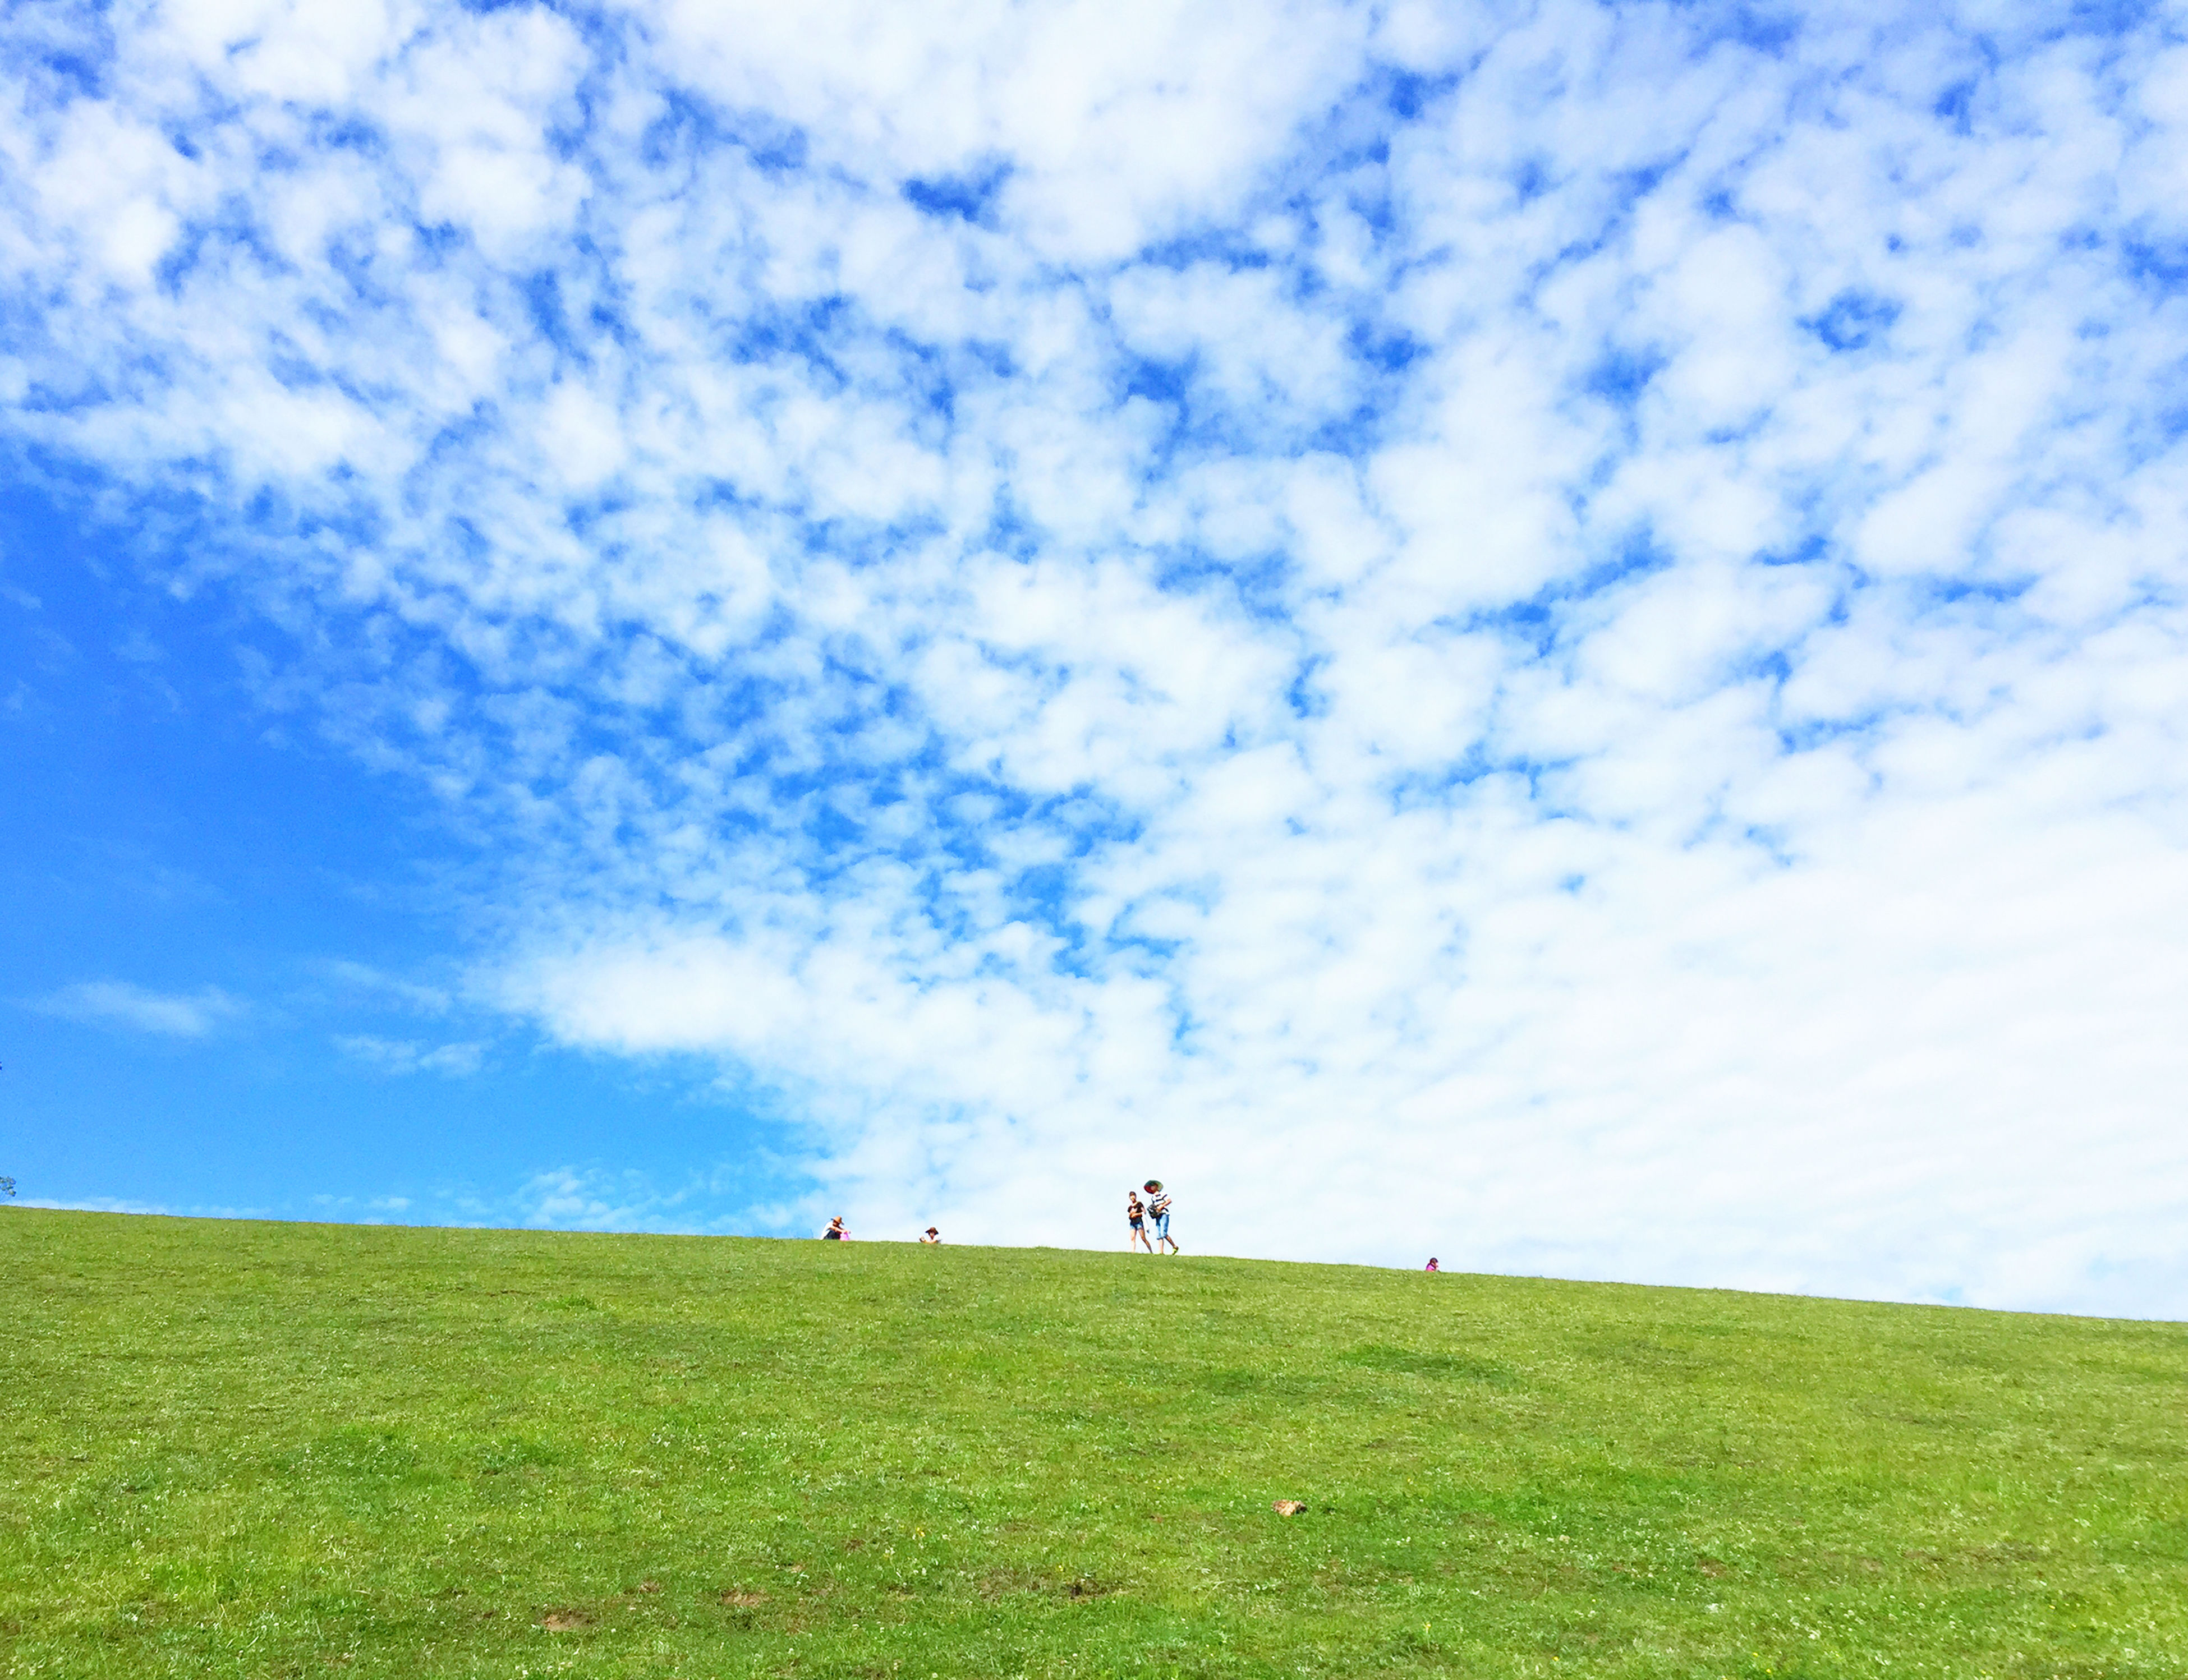 grass, sky, grassy, field, cloud - sky, landscape, green color, tranquility, tranquil scene, cloud, nature, beauty in nature, scenics, cloudy, leisure activity, day, blue, green, grassland